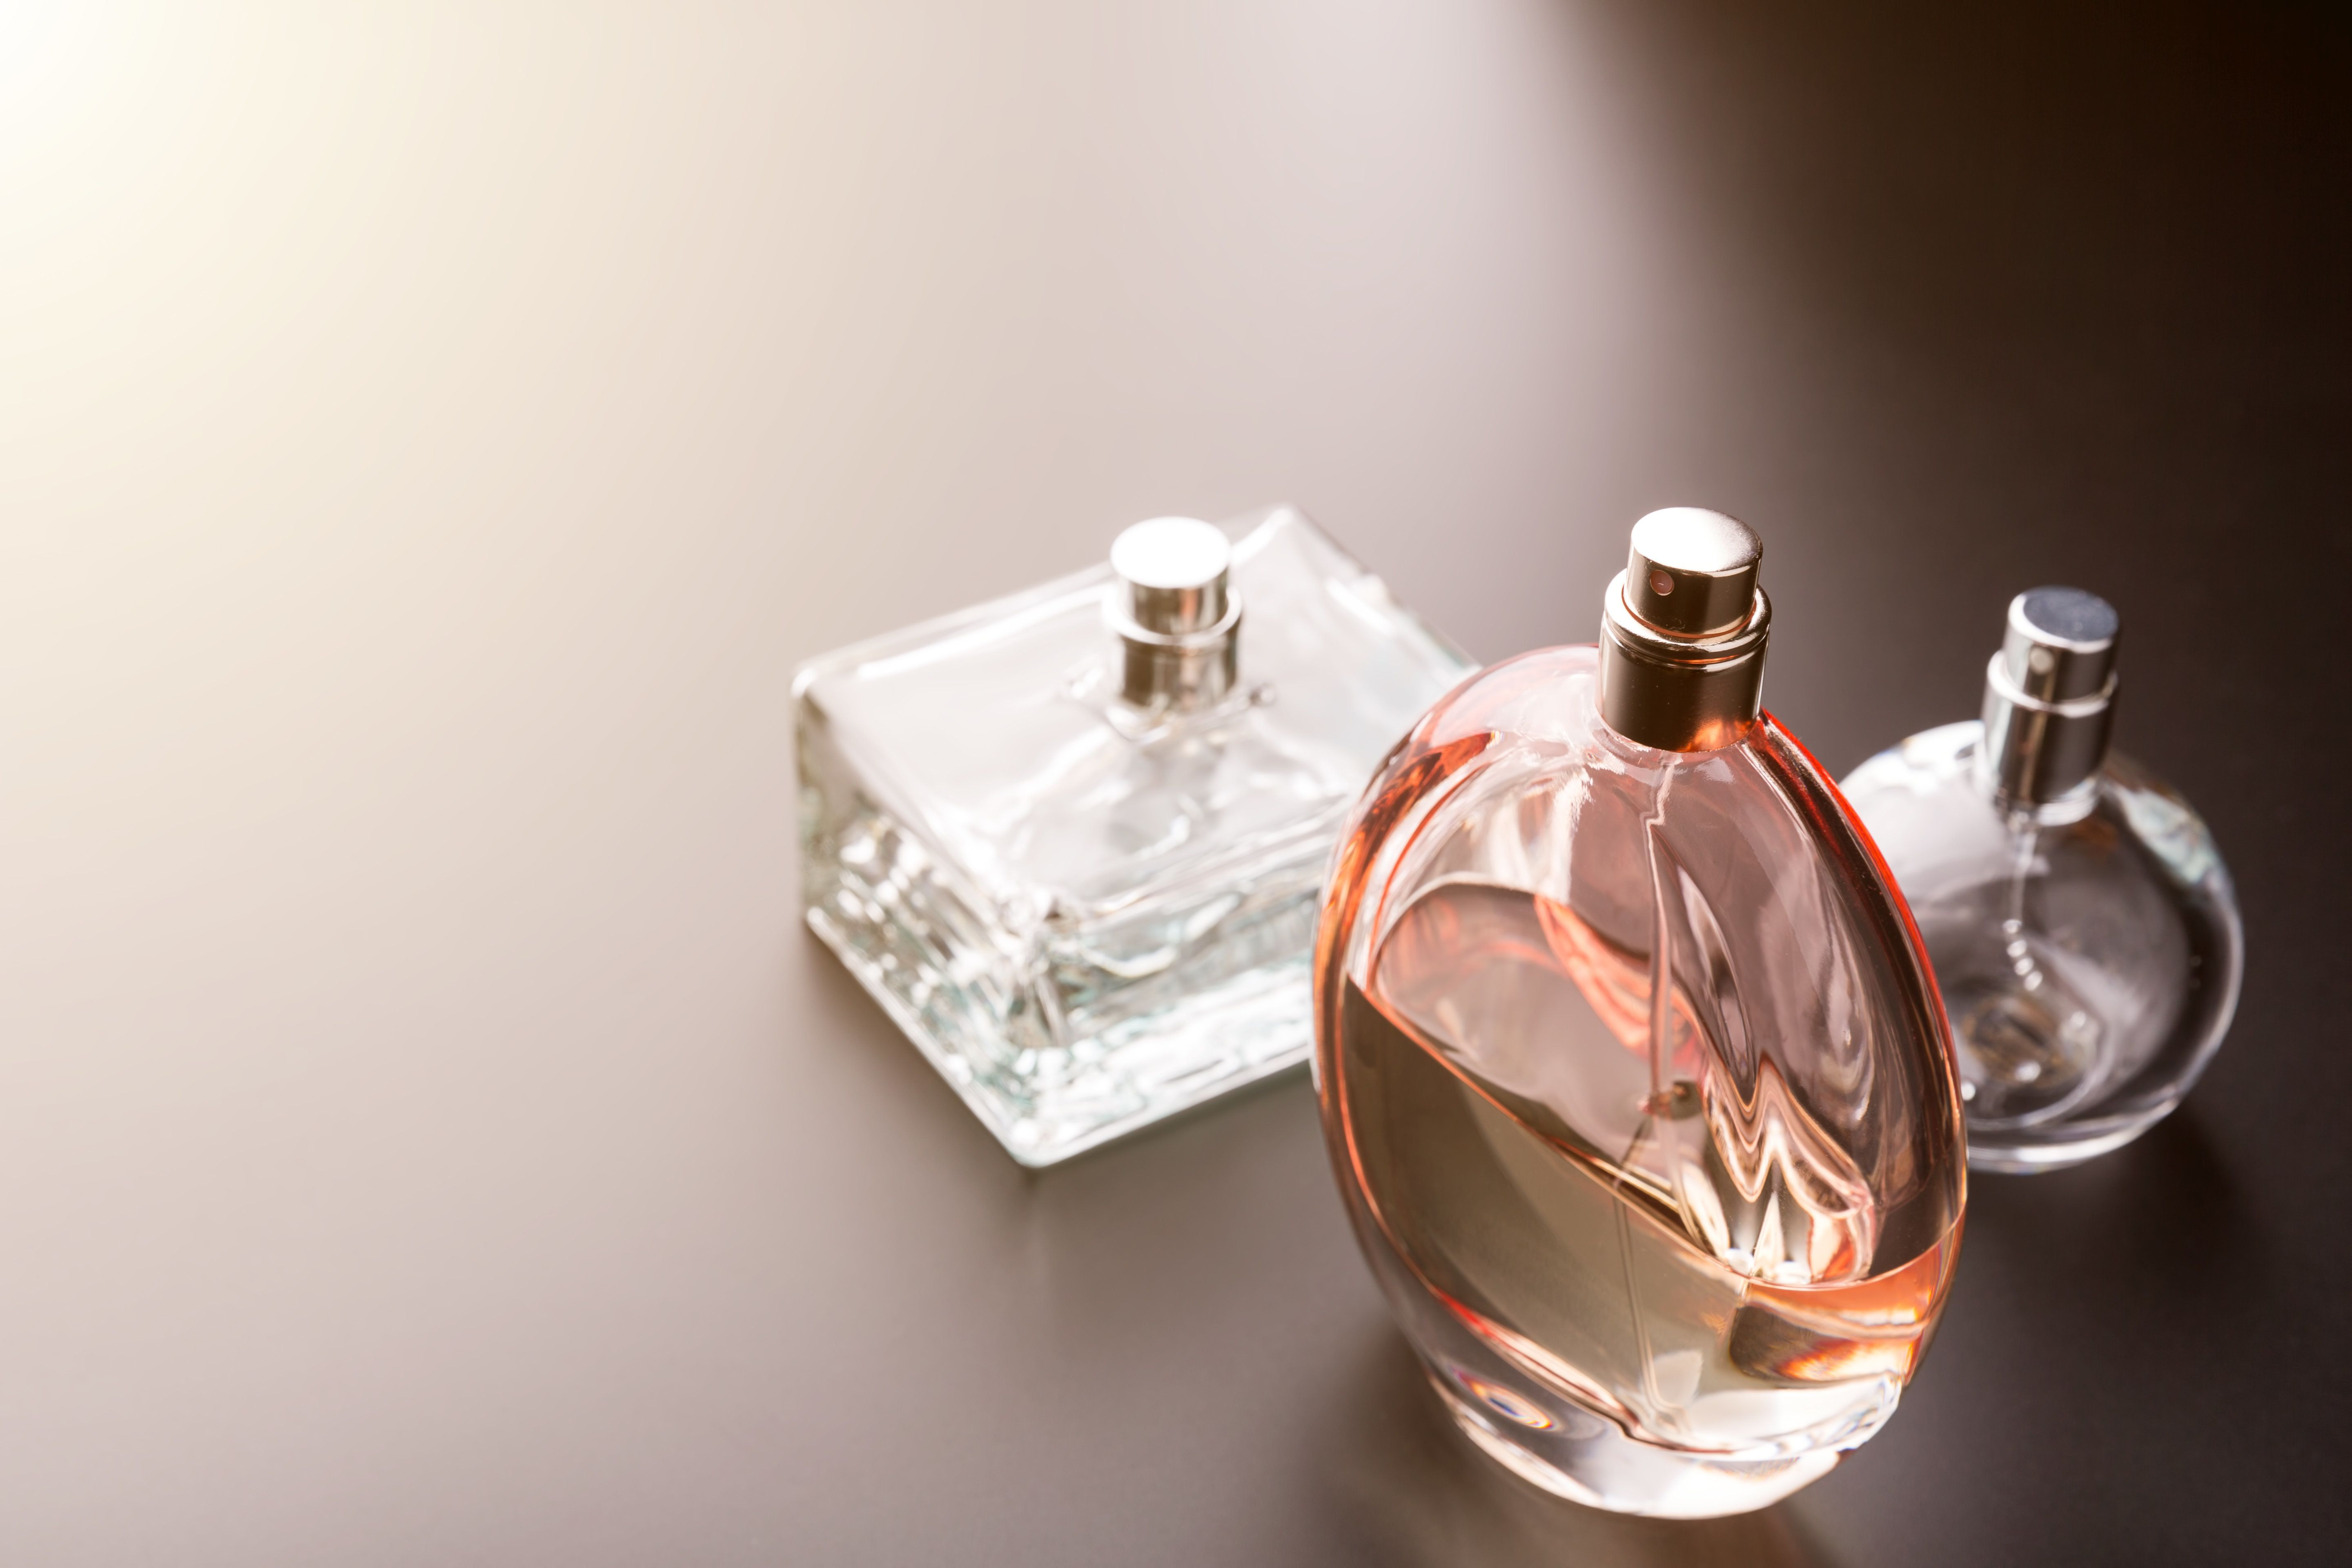 Counterfeit Perfume Found To Contain Urine, Antifreeze And Other 'Dangerous